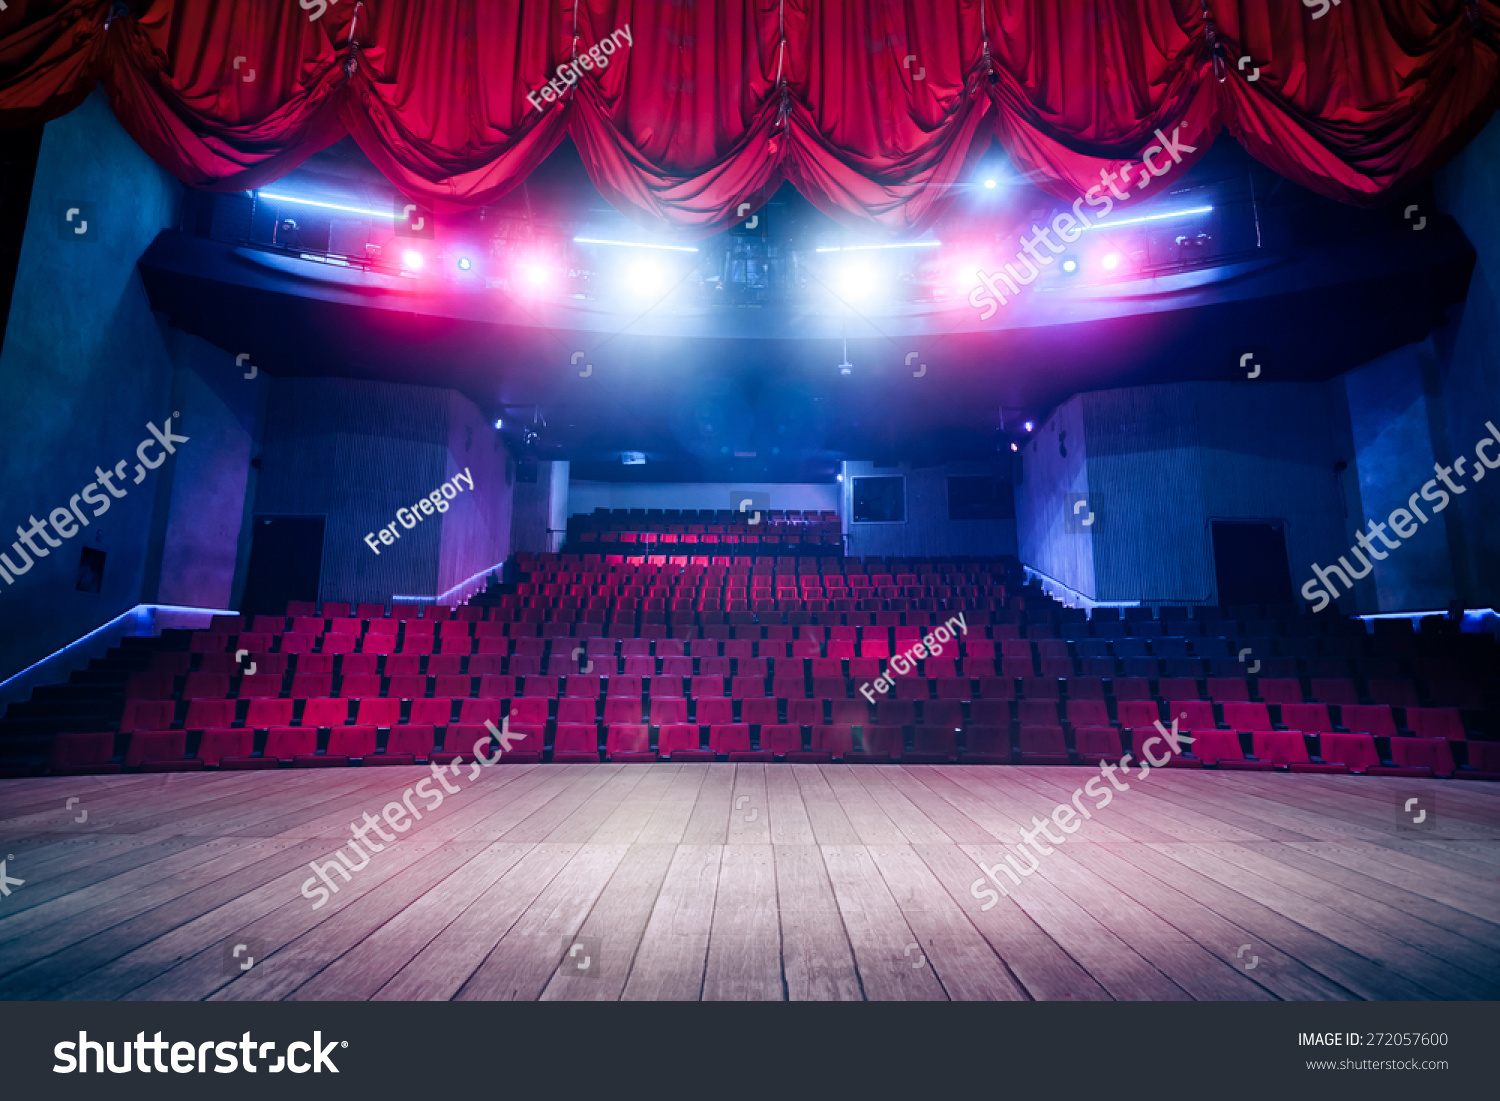 Theater curtain and stage with dramatic lighting  sc 1 st  Shutterstock & Theater Curtain Stage Dramatic Lighting Stock Photo 272057600 ... azcodes.com